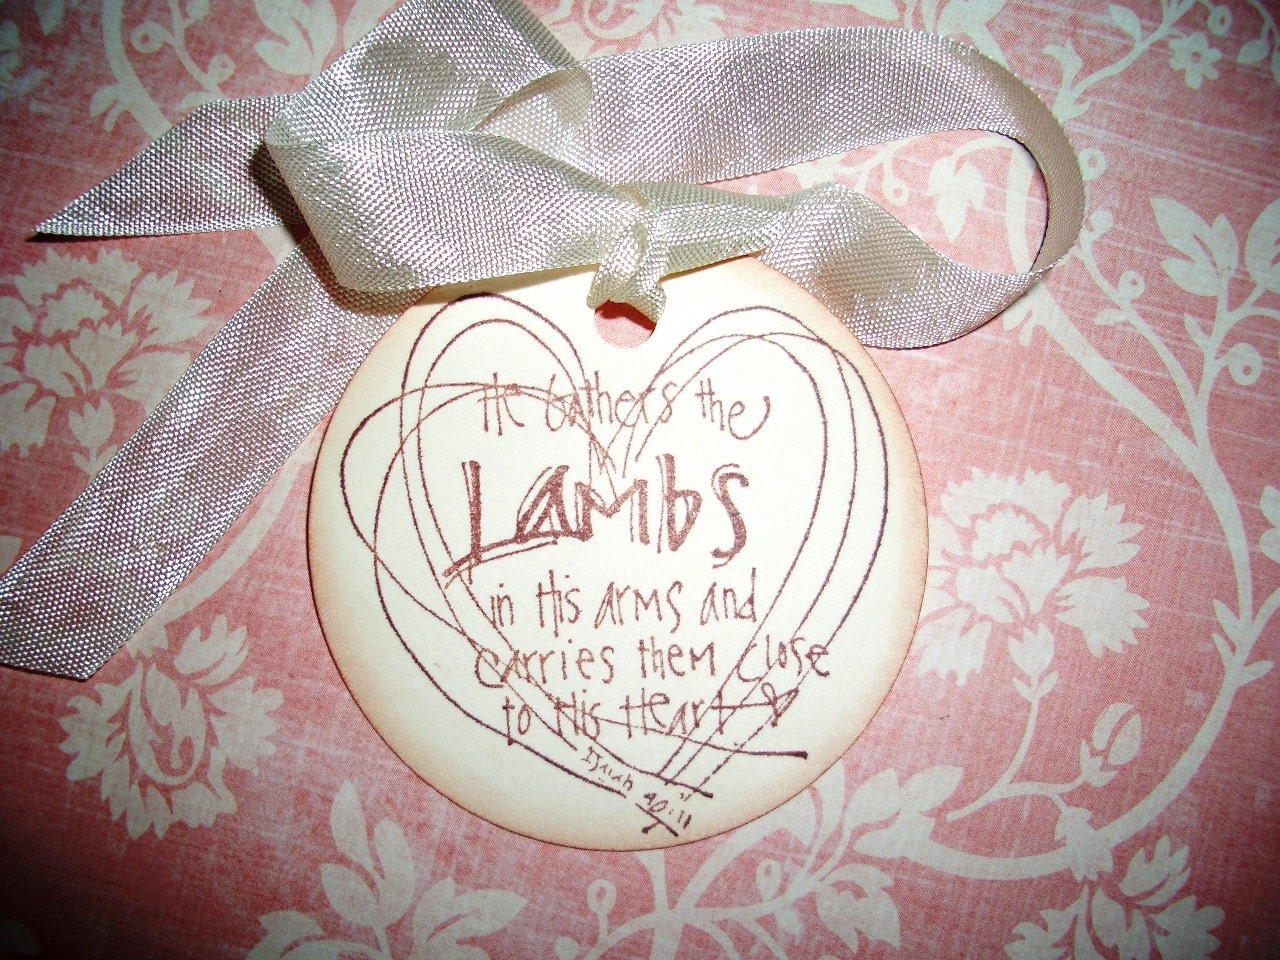 Parents can be a godly influence - baby shower devotion